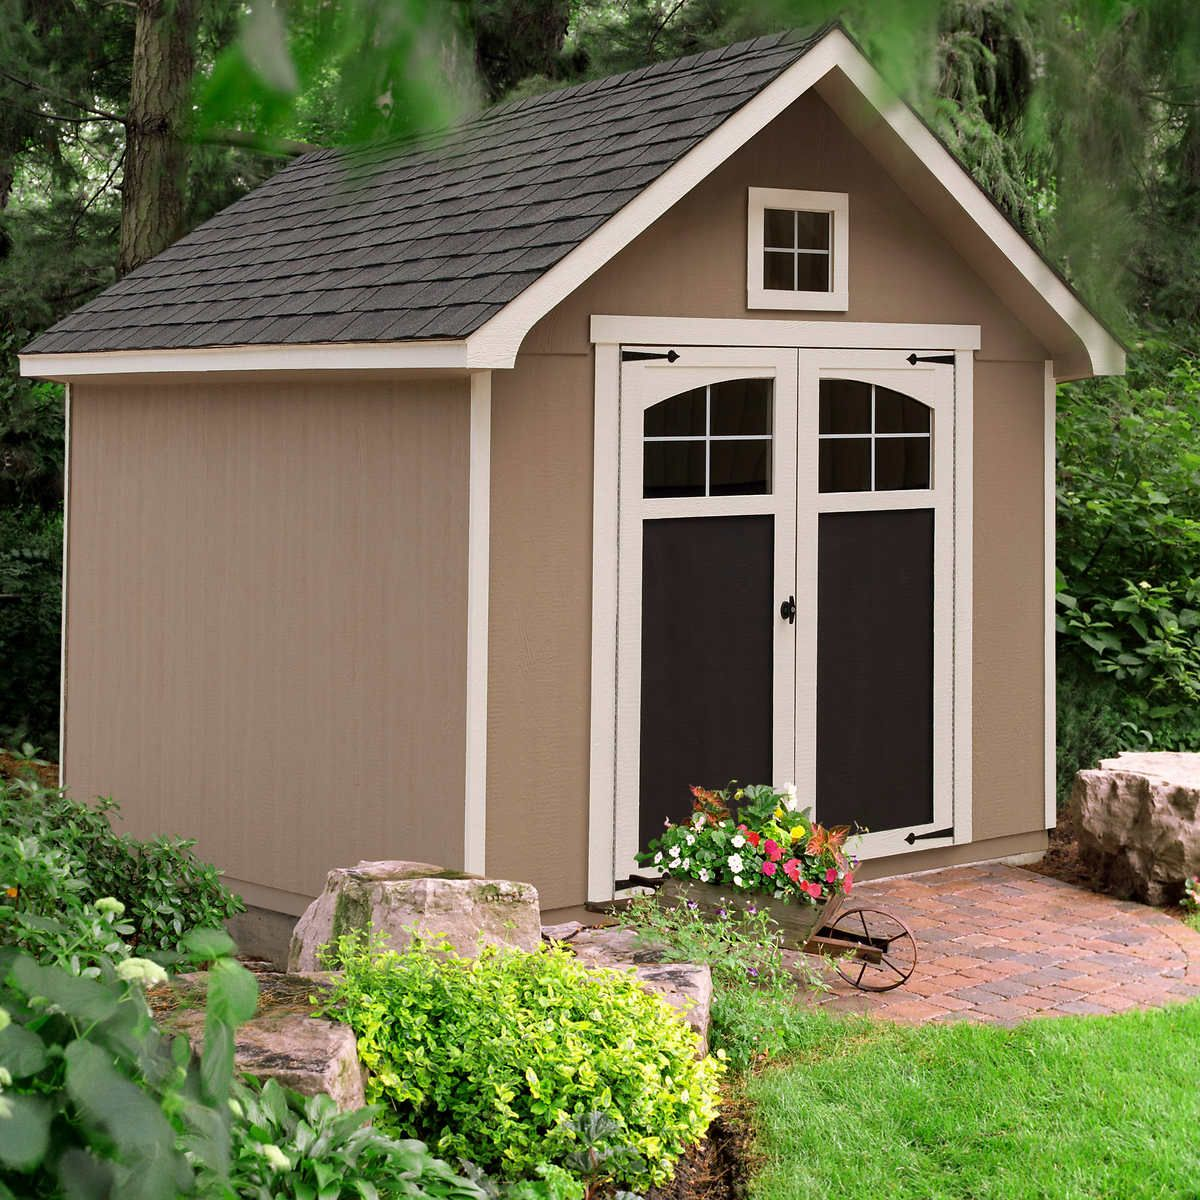 Pin By Dottie Riden On Sheds In 2020 Backyard Sheds Wood Shed Outdoor Sheds